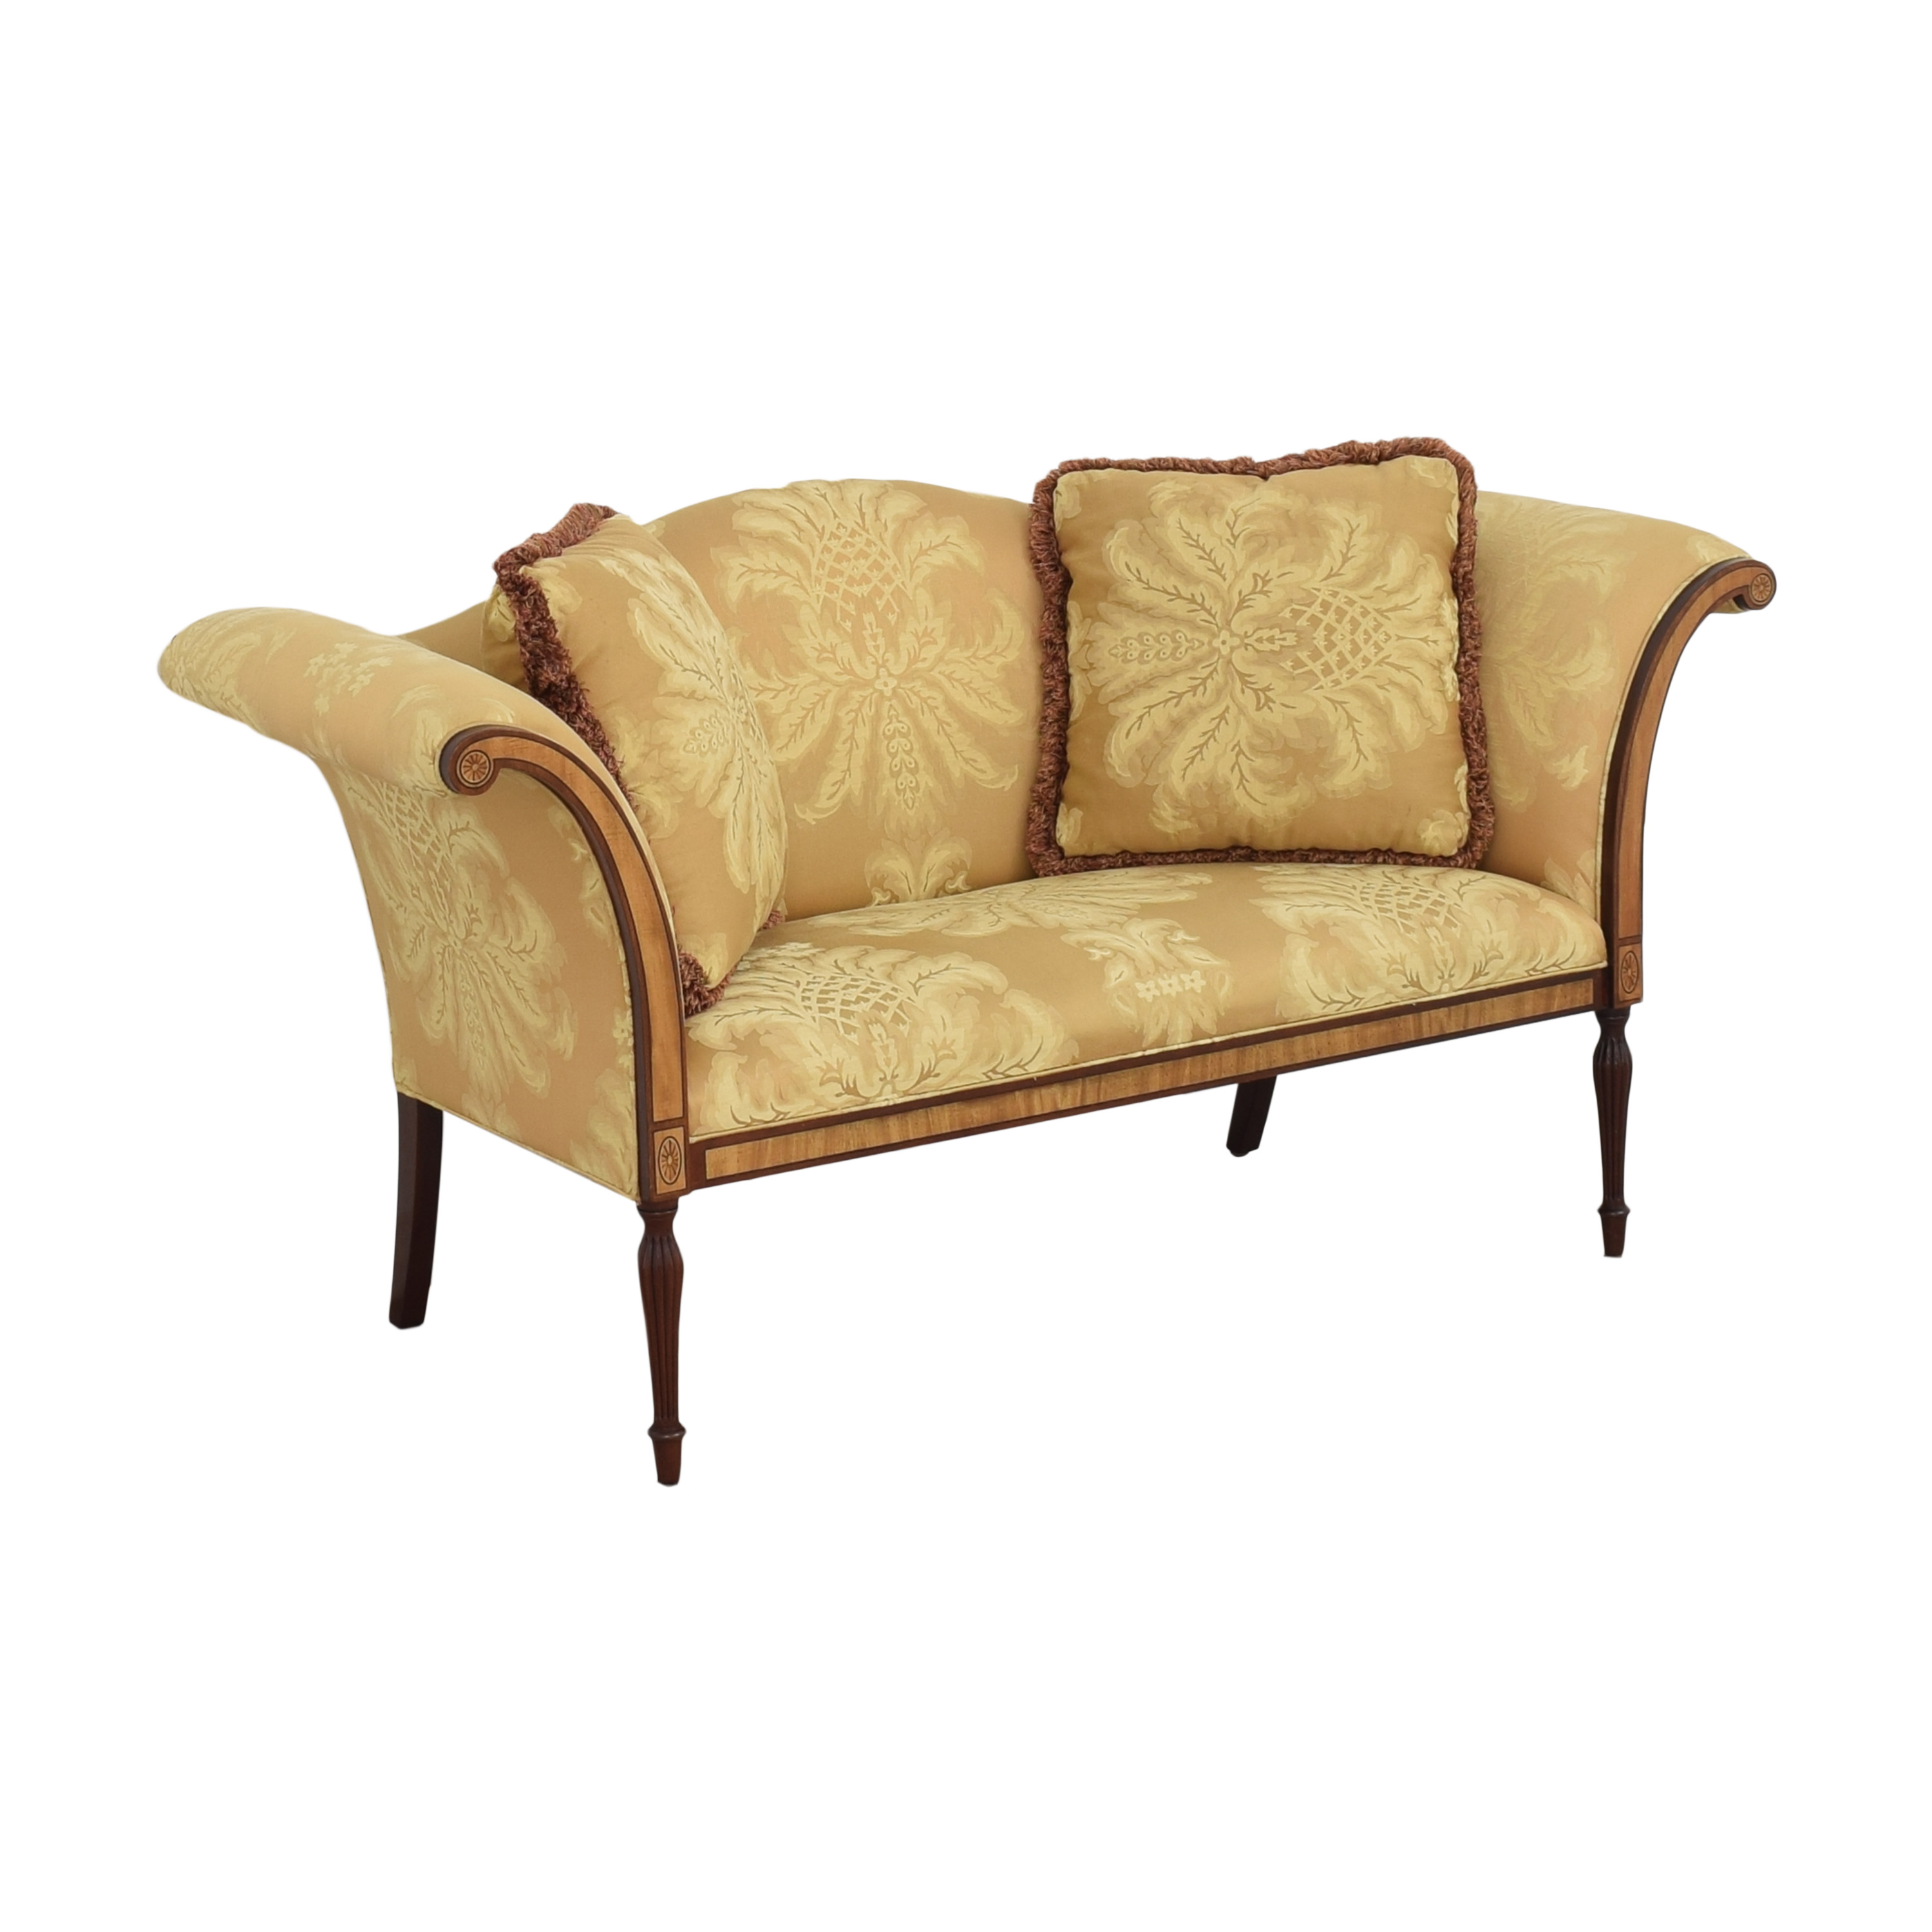 Southwood Southwood Loveseat with Pillows dimensions